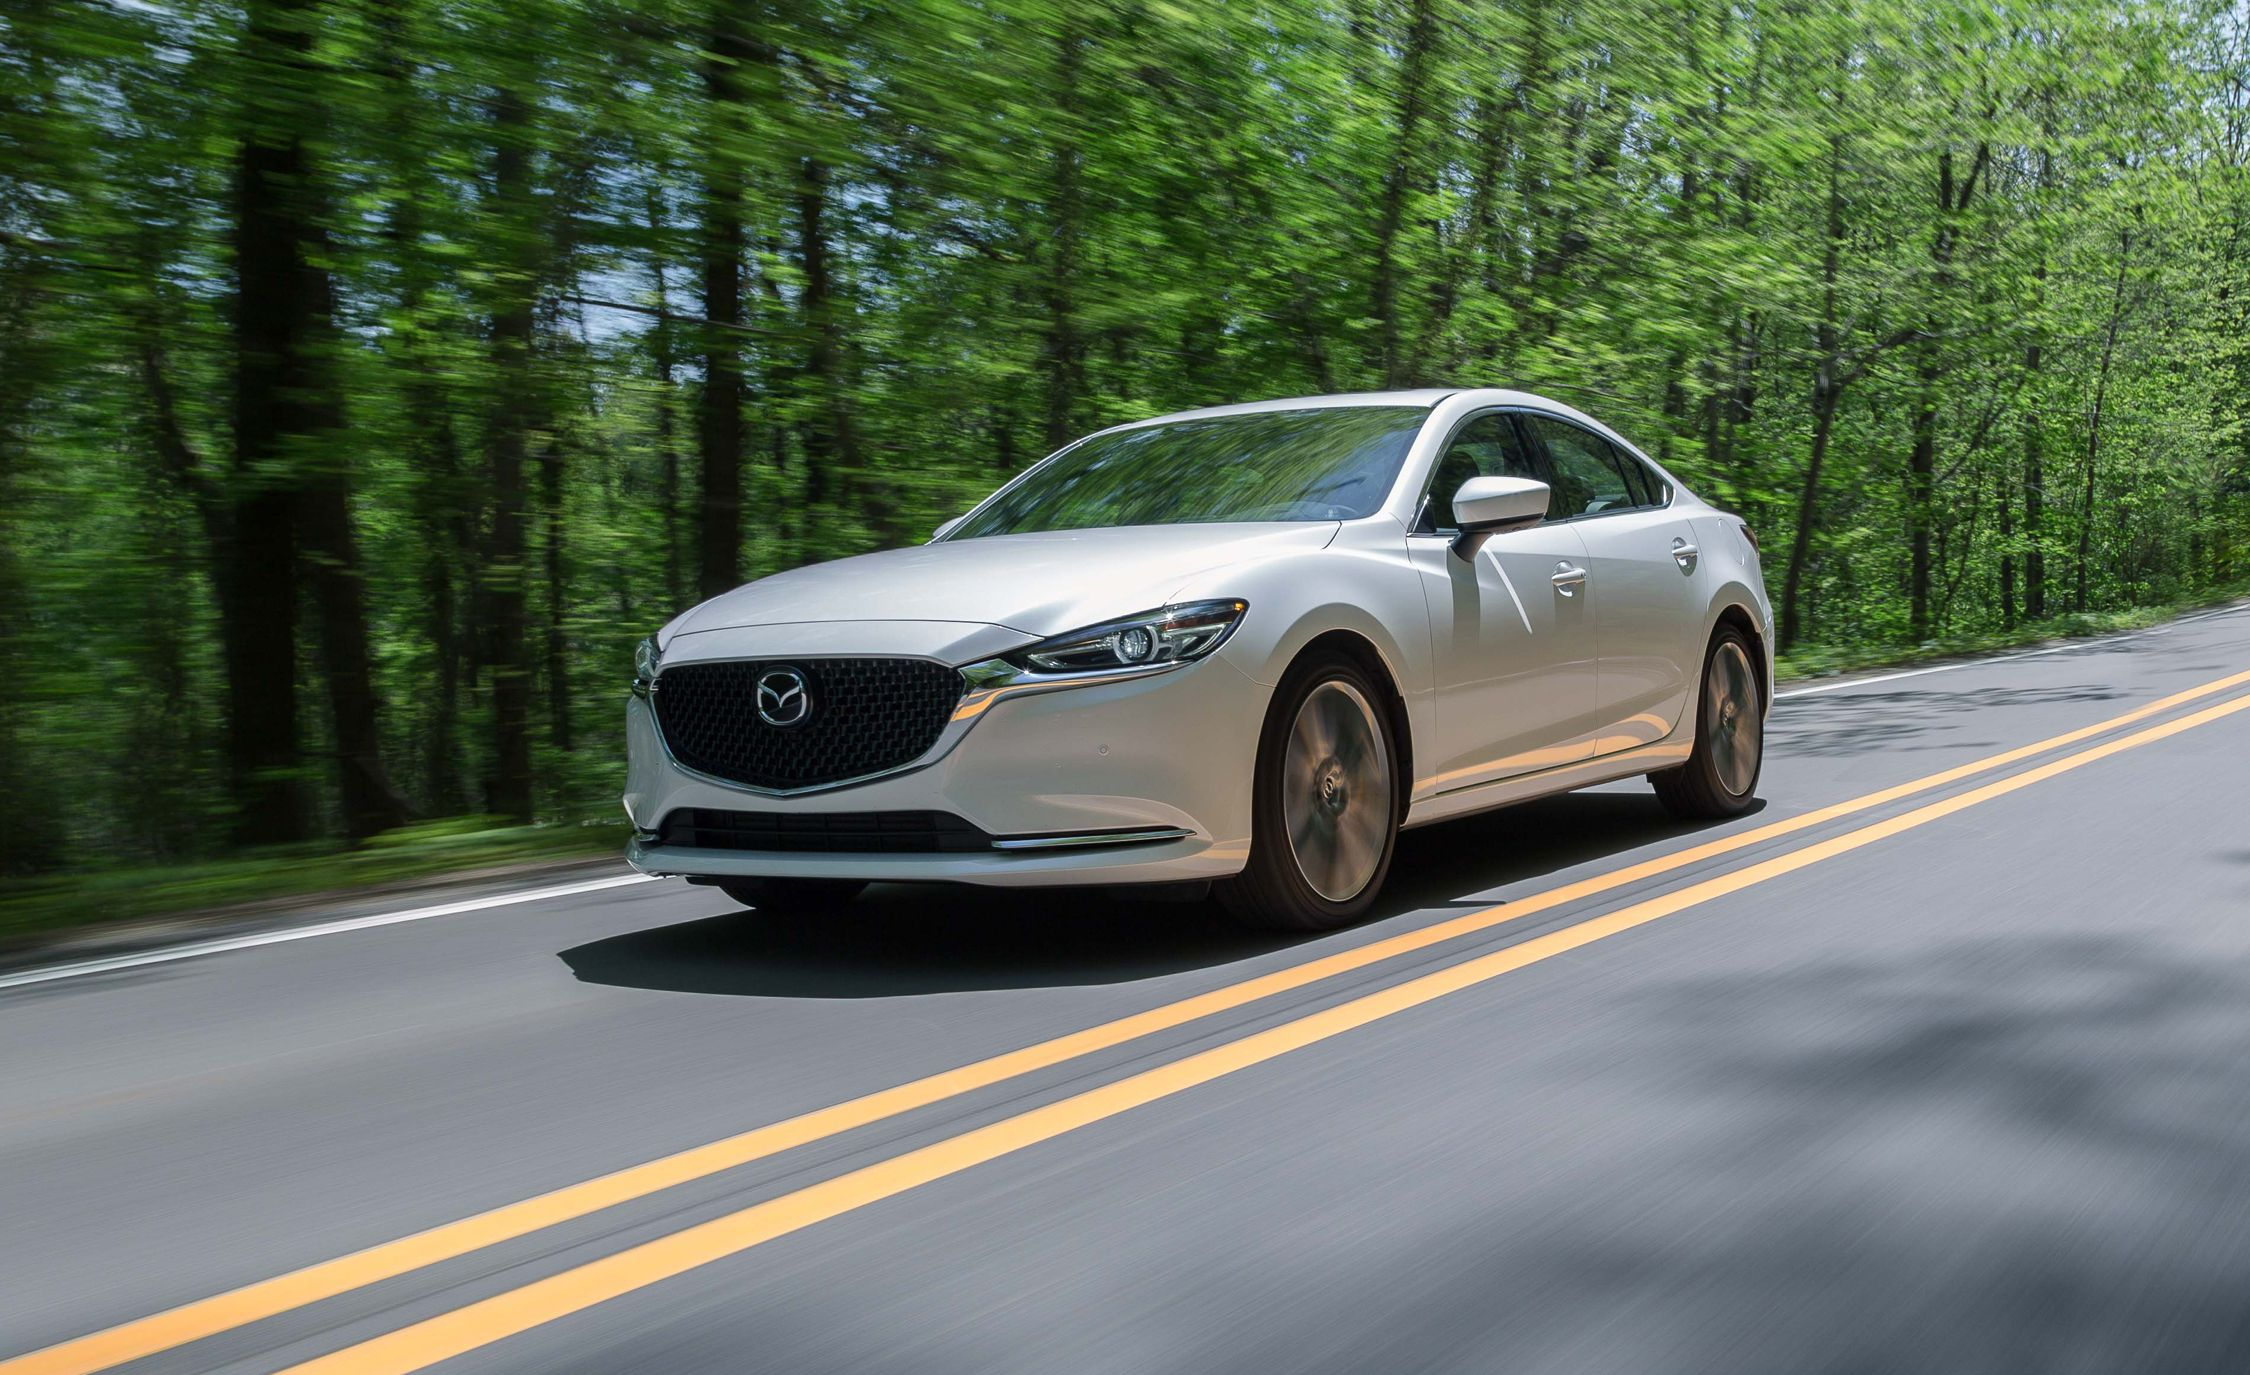 2018 Mazda 6 Turbo Tested The Silence Of The Cams Review Car